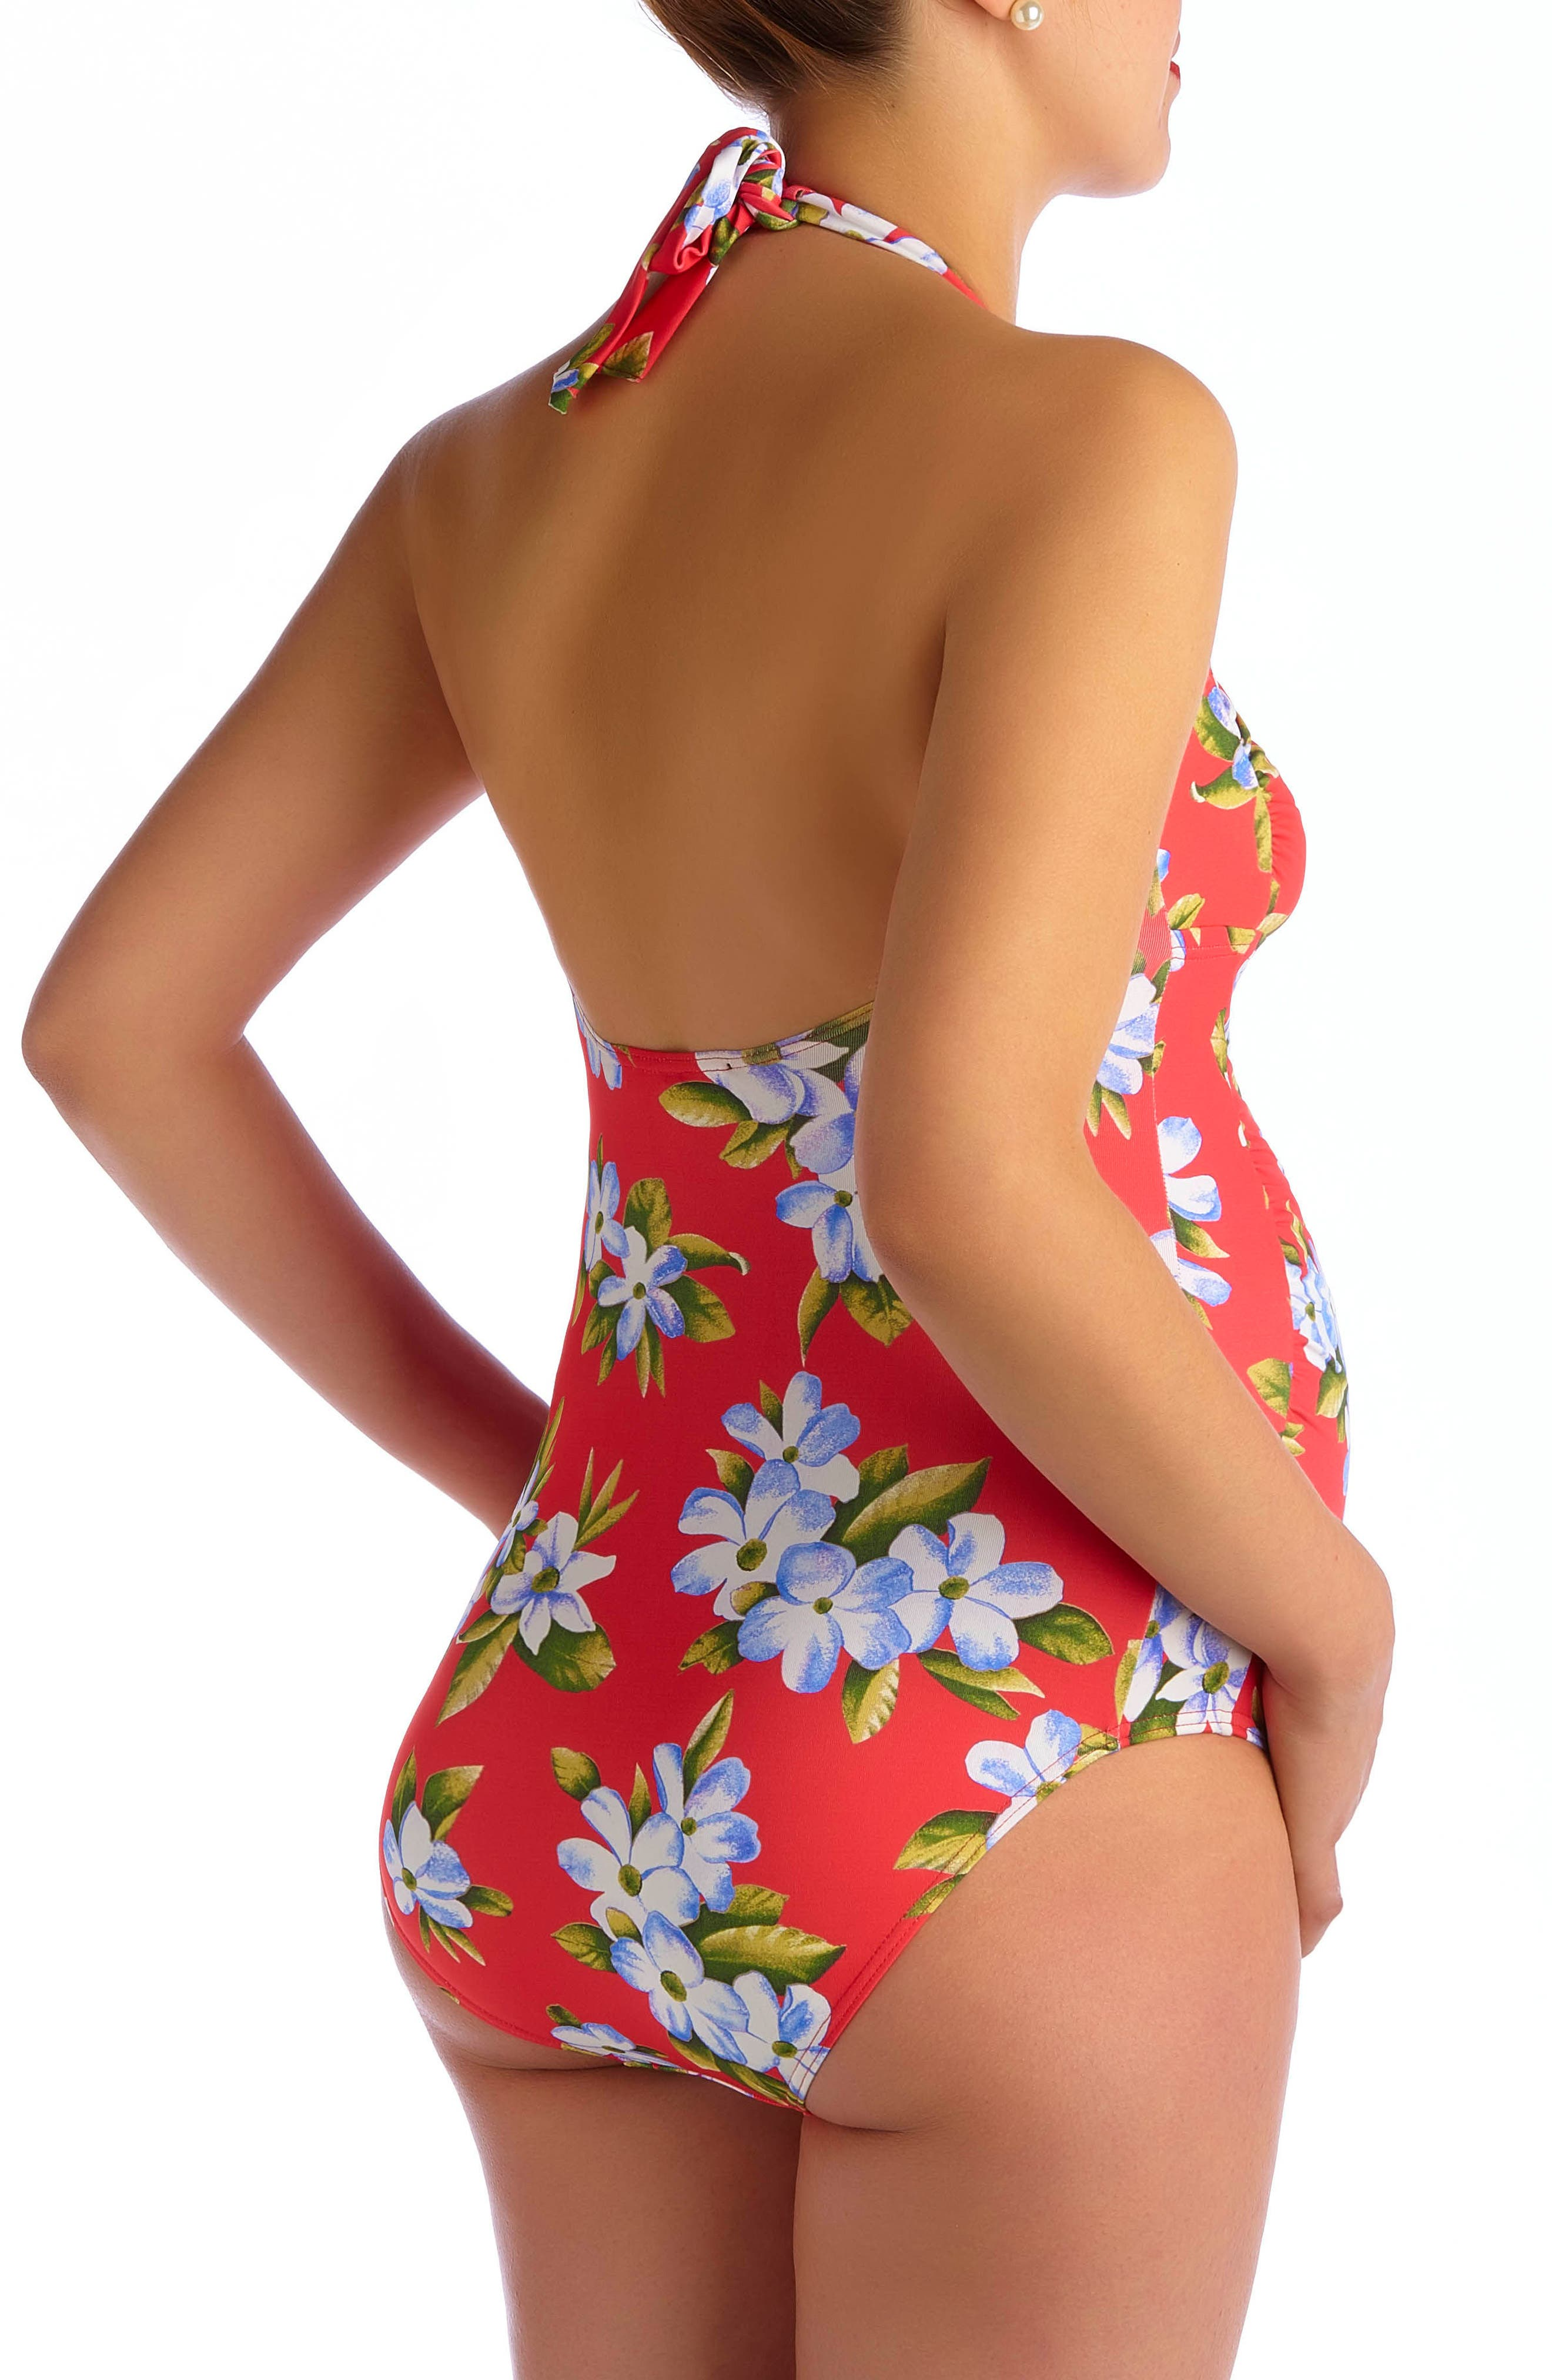 Maui Hibiscus One-Piece Maternity Swimsuit,                             Alternate thumbnail 2, color,                             CORAL